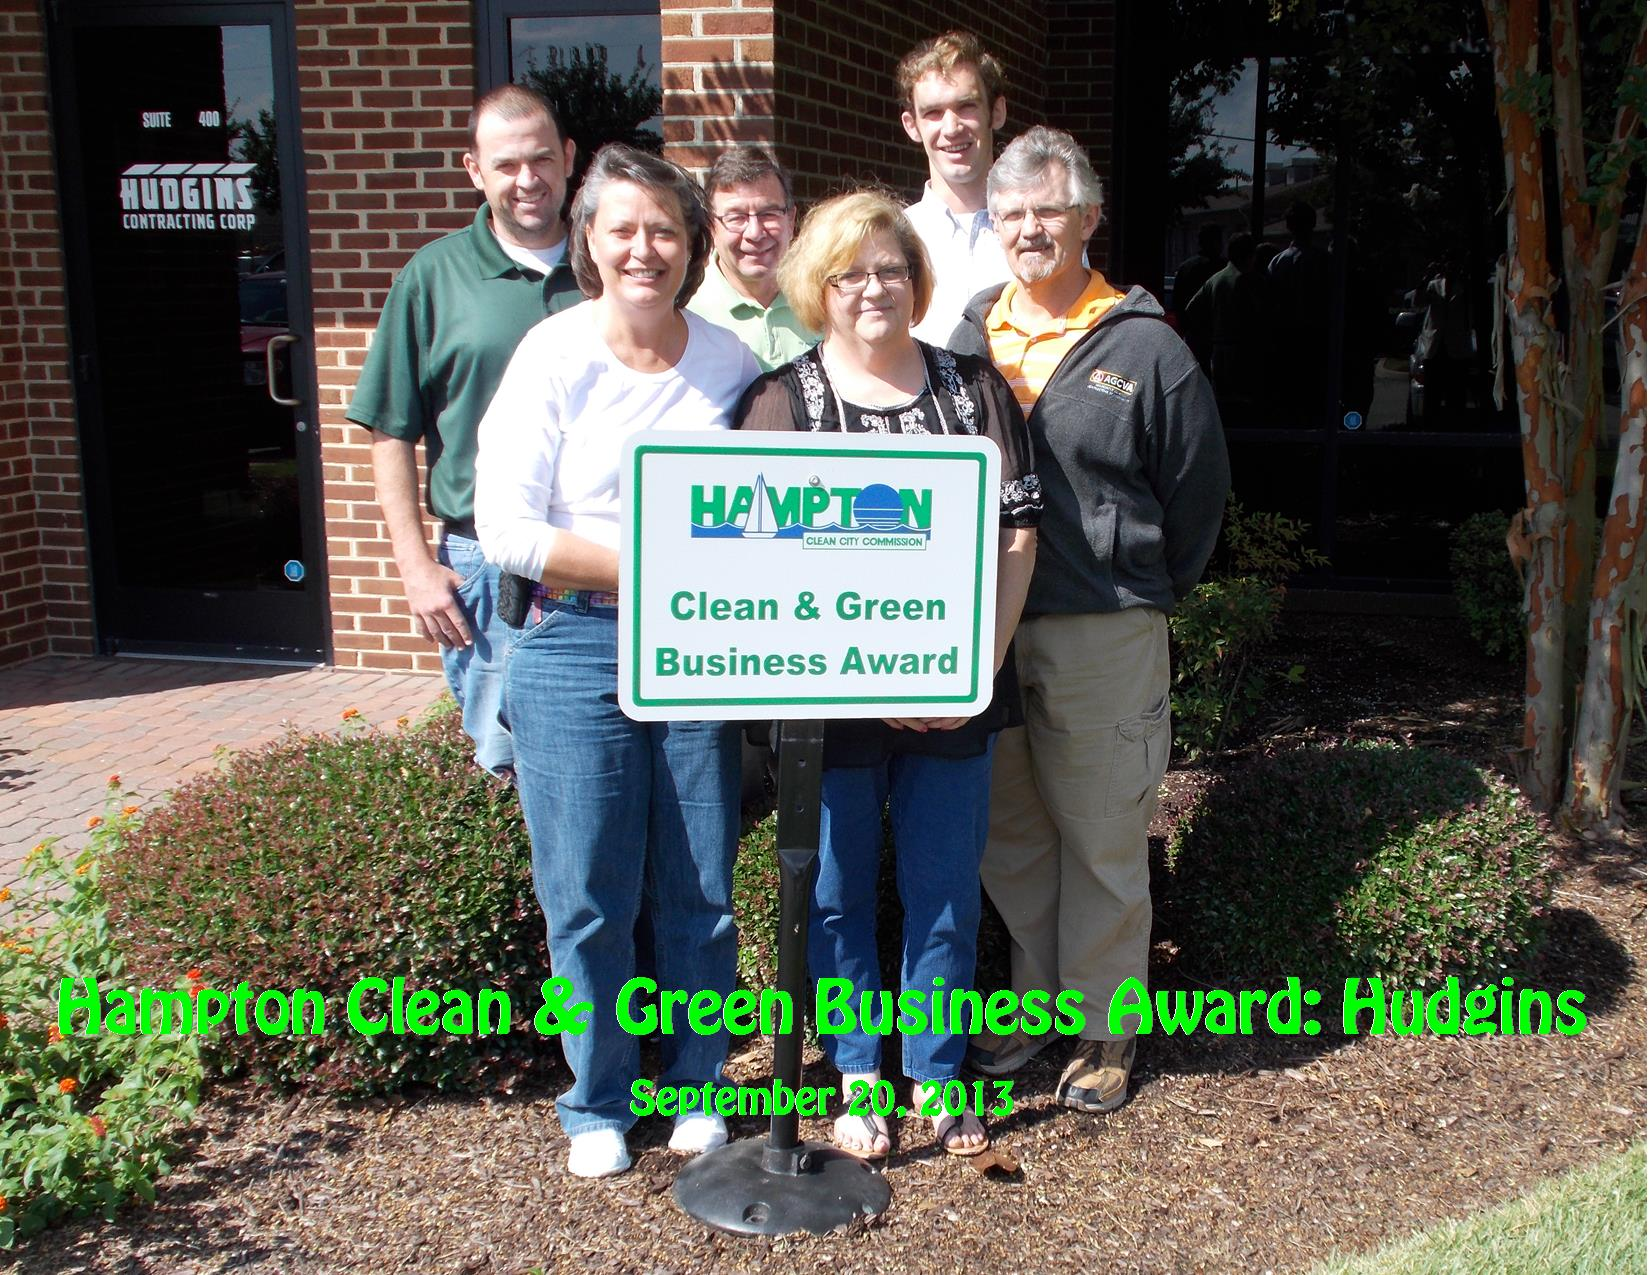 9-20-13 Clean Business Award Hudgins